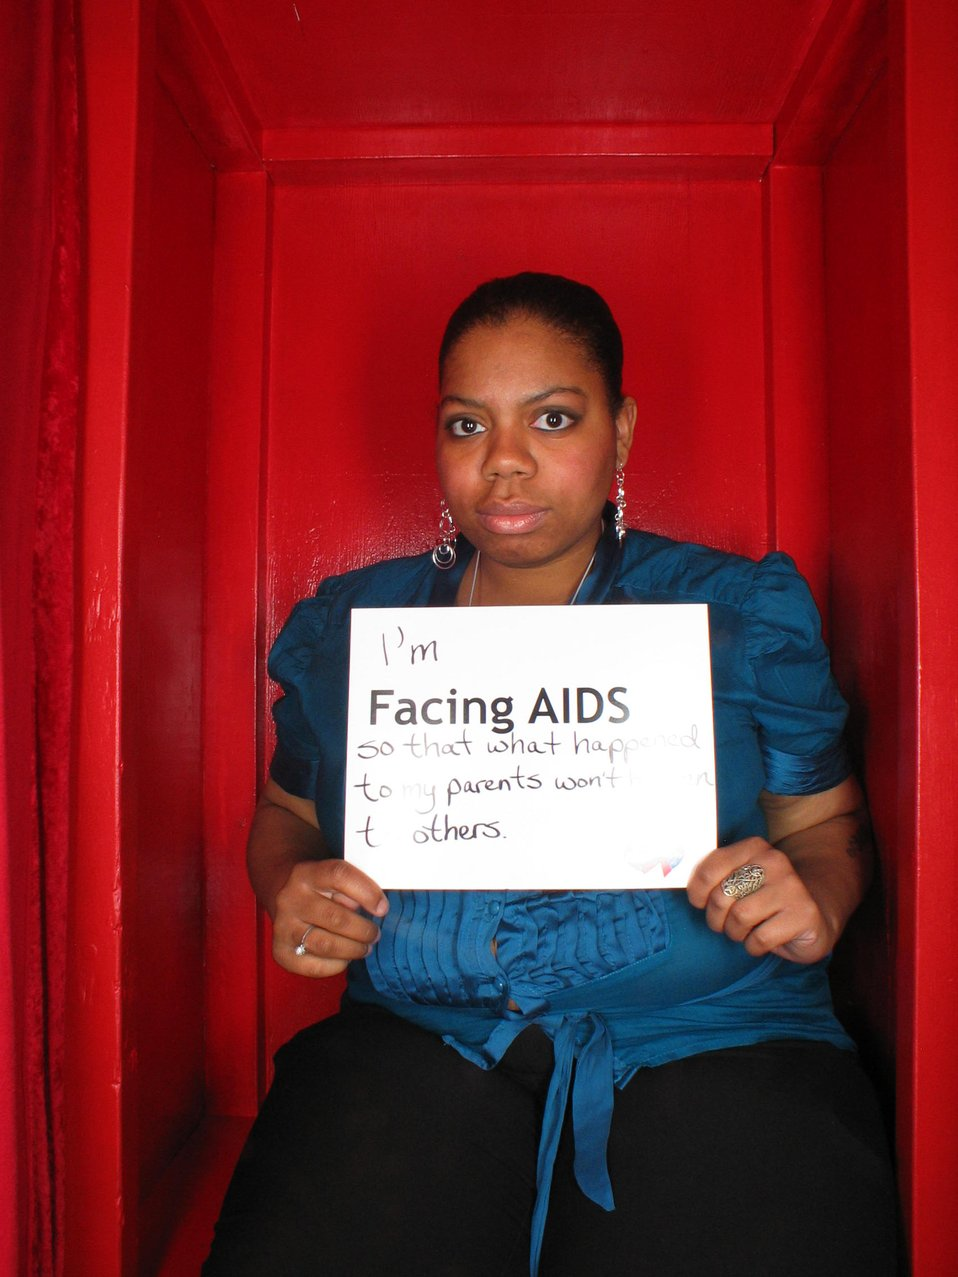 I'm Facing AIDS so that what happened to my parents won't happen to others.